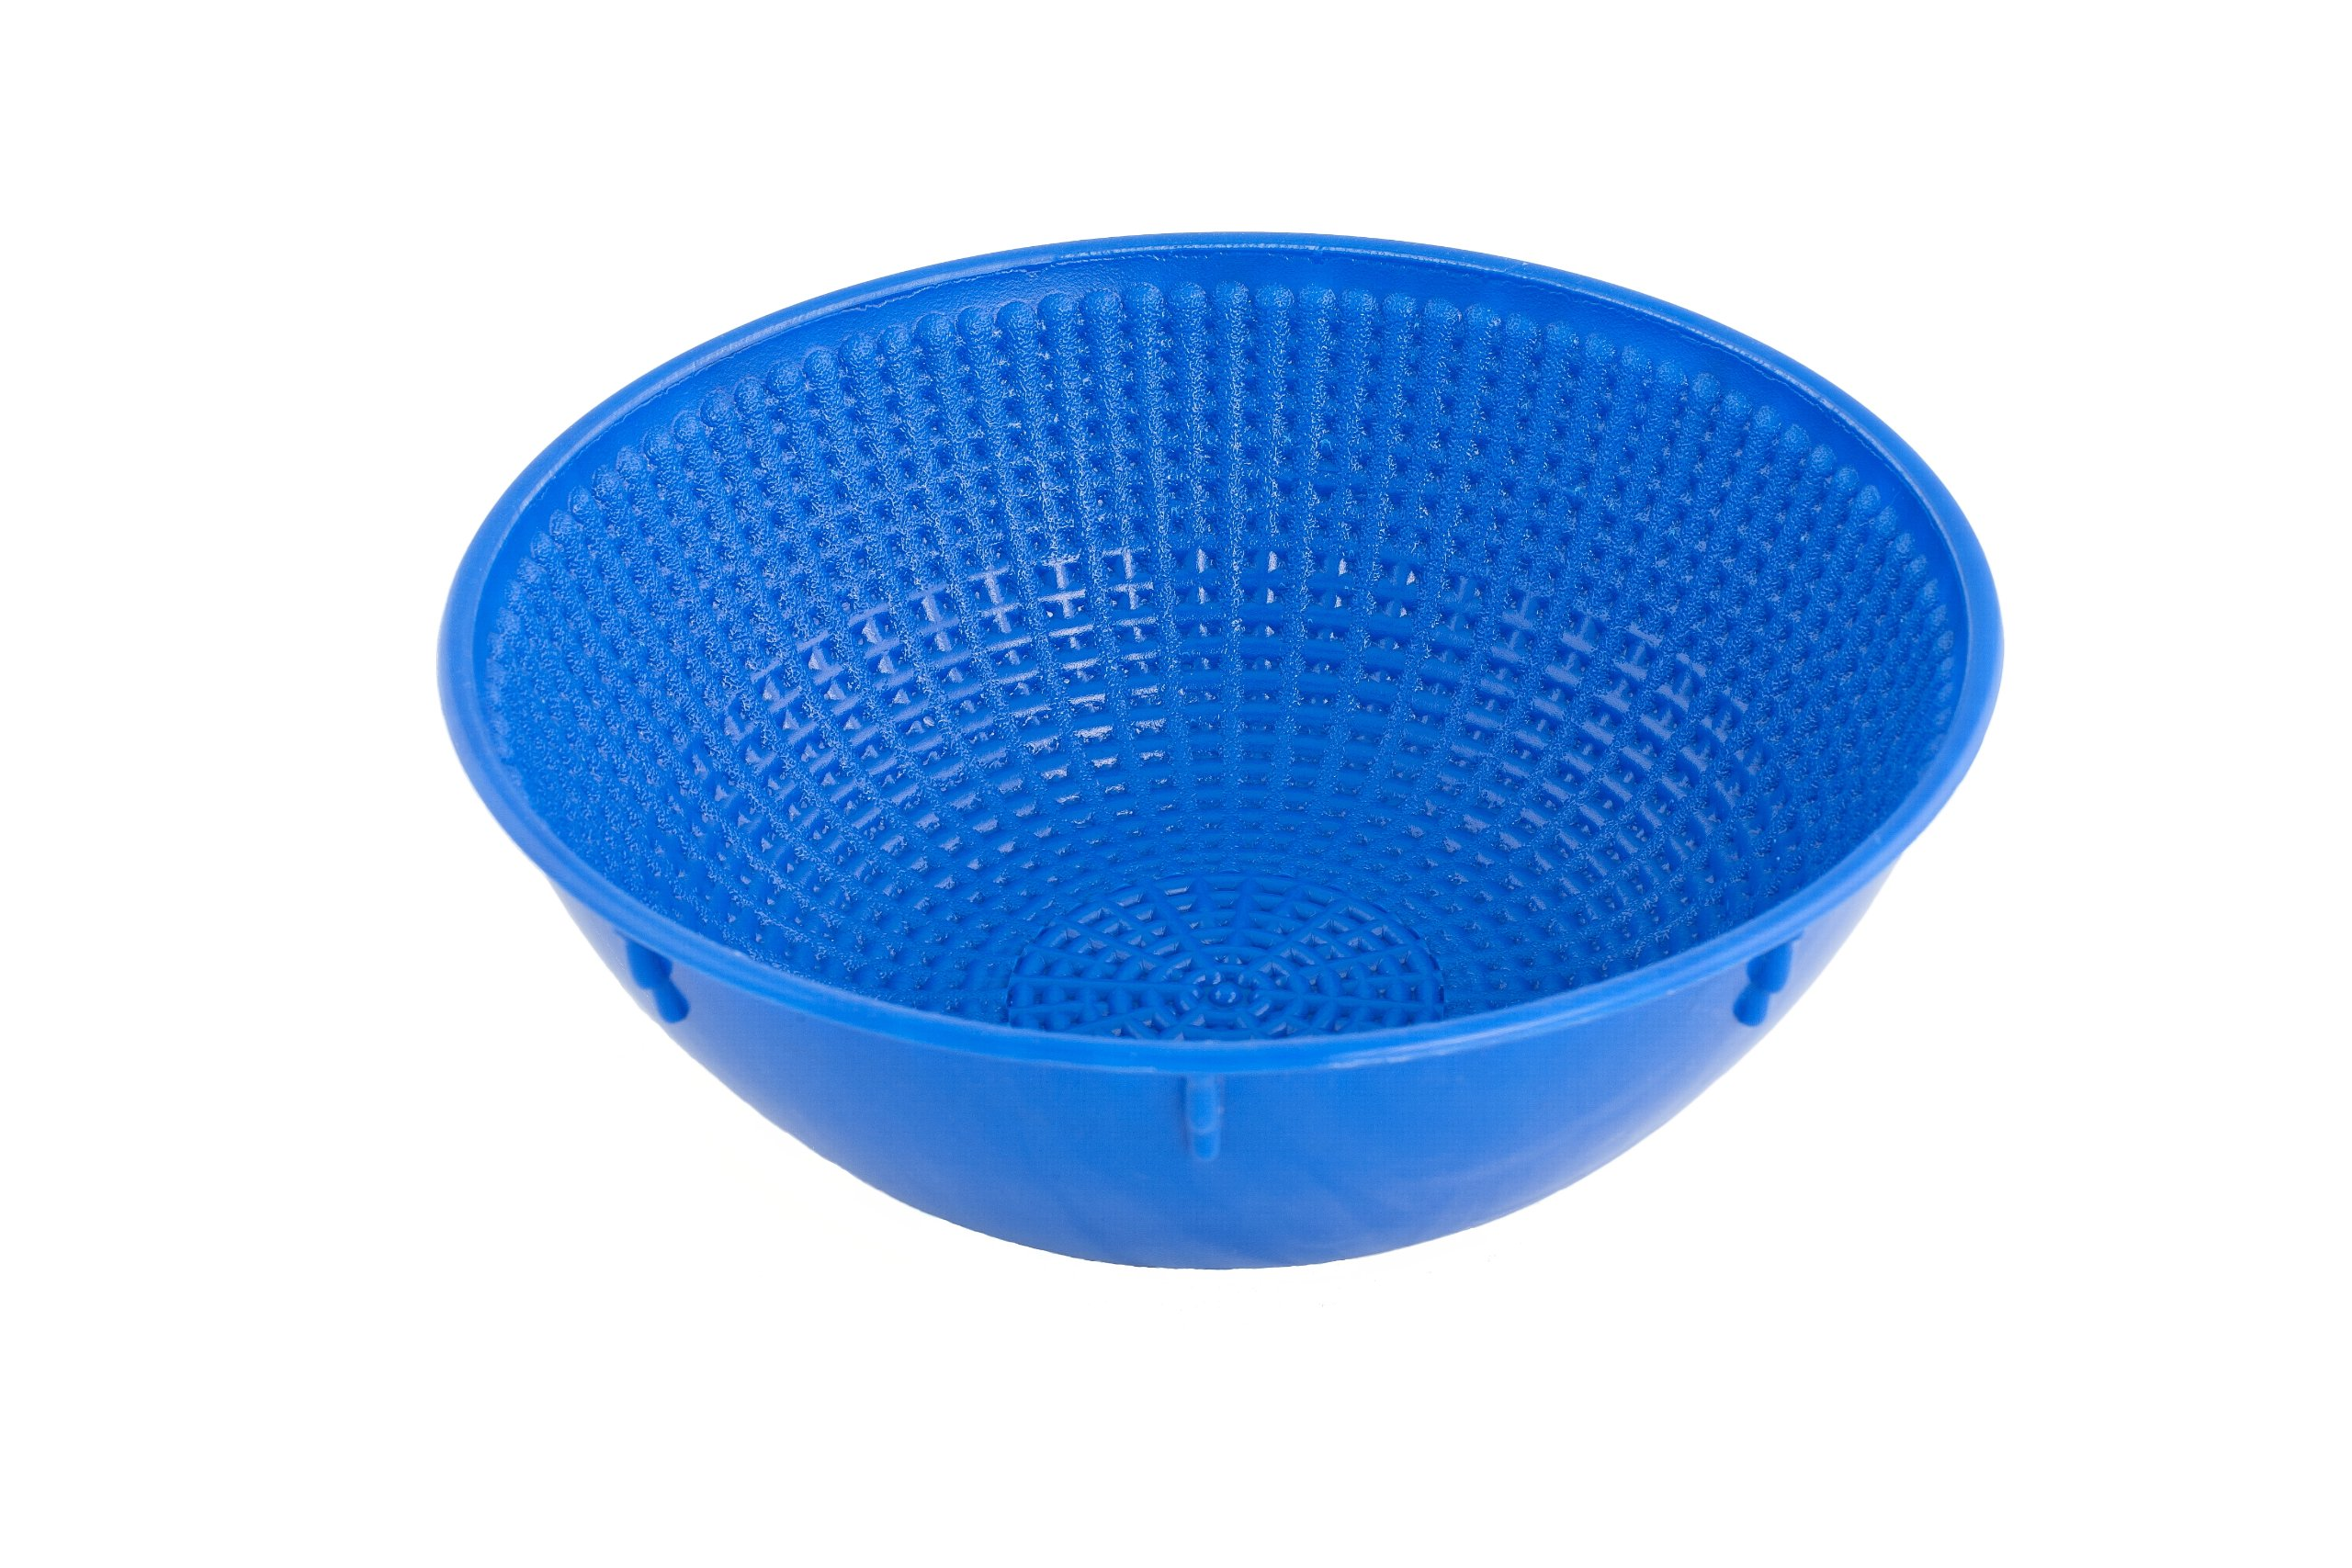 Paderno World Cuisine 10-Inch Round Blue Proofing Basket (1.5 Kilo) by Paderno World Cuisine